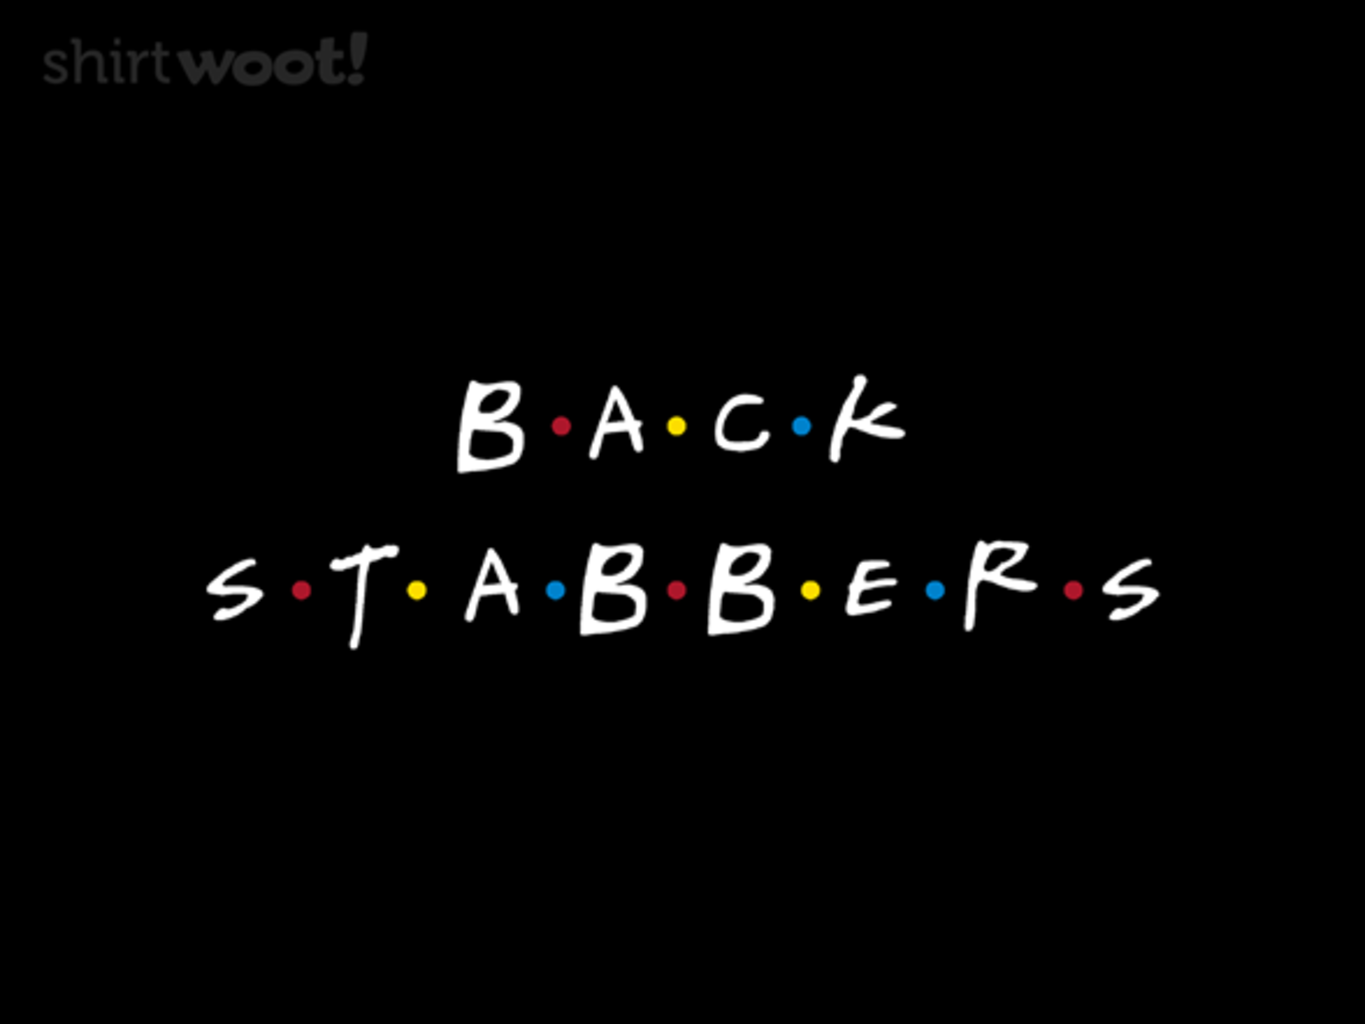 Woot!: Back Stabbers